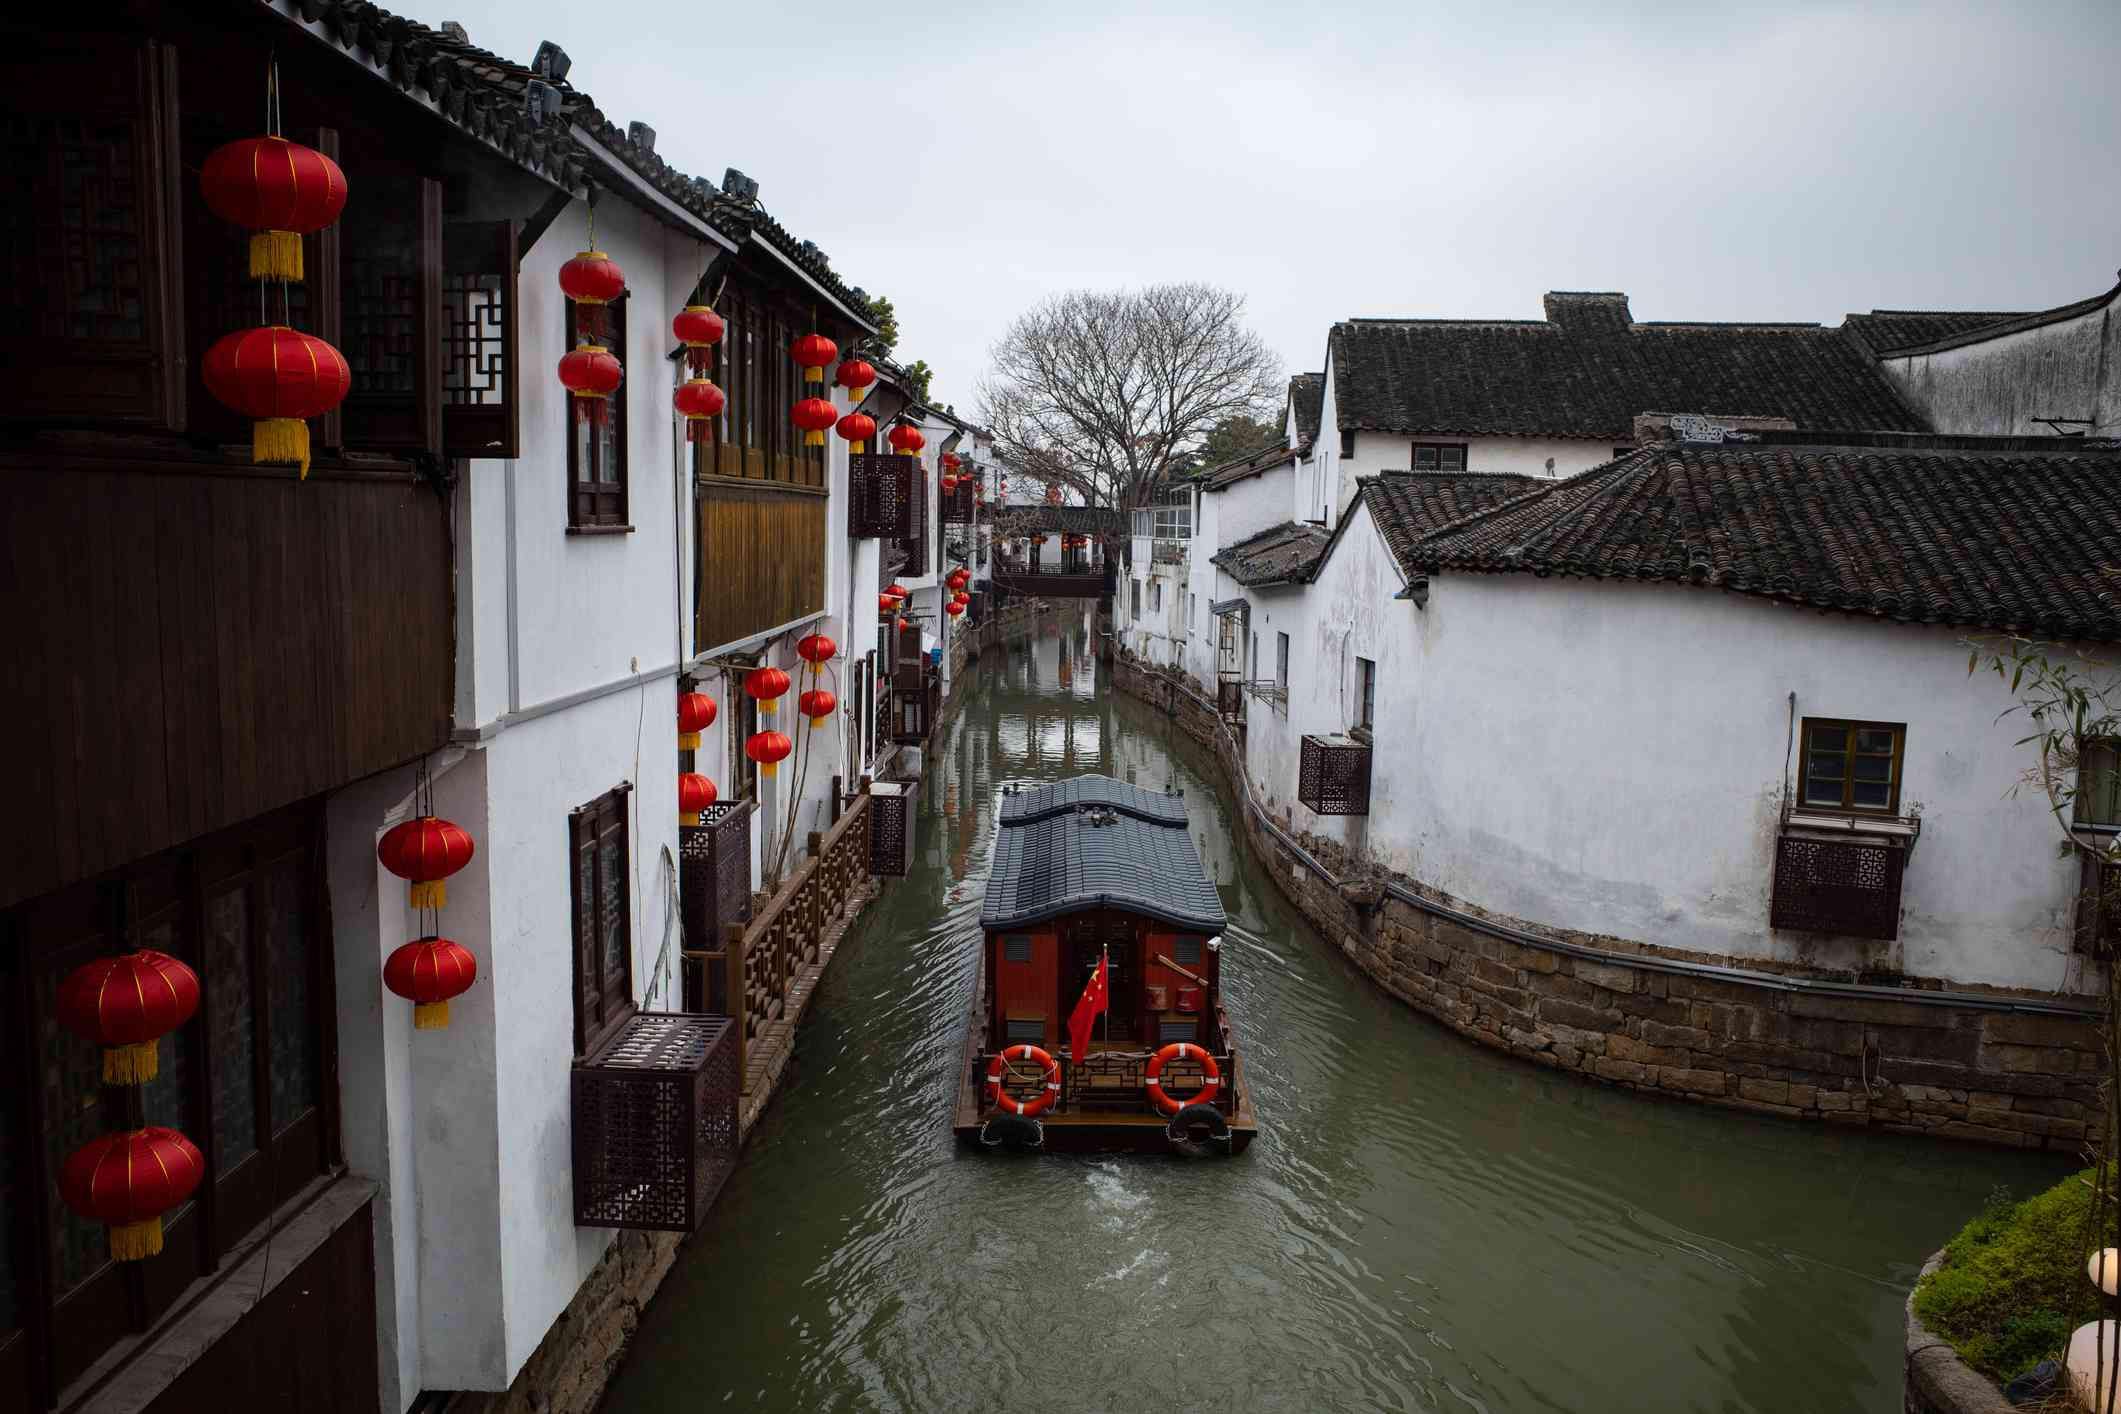 black boat with red trim traveling through the water in the old water town of Suzhou